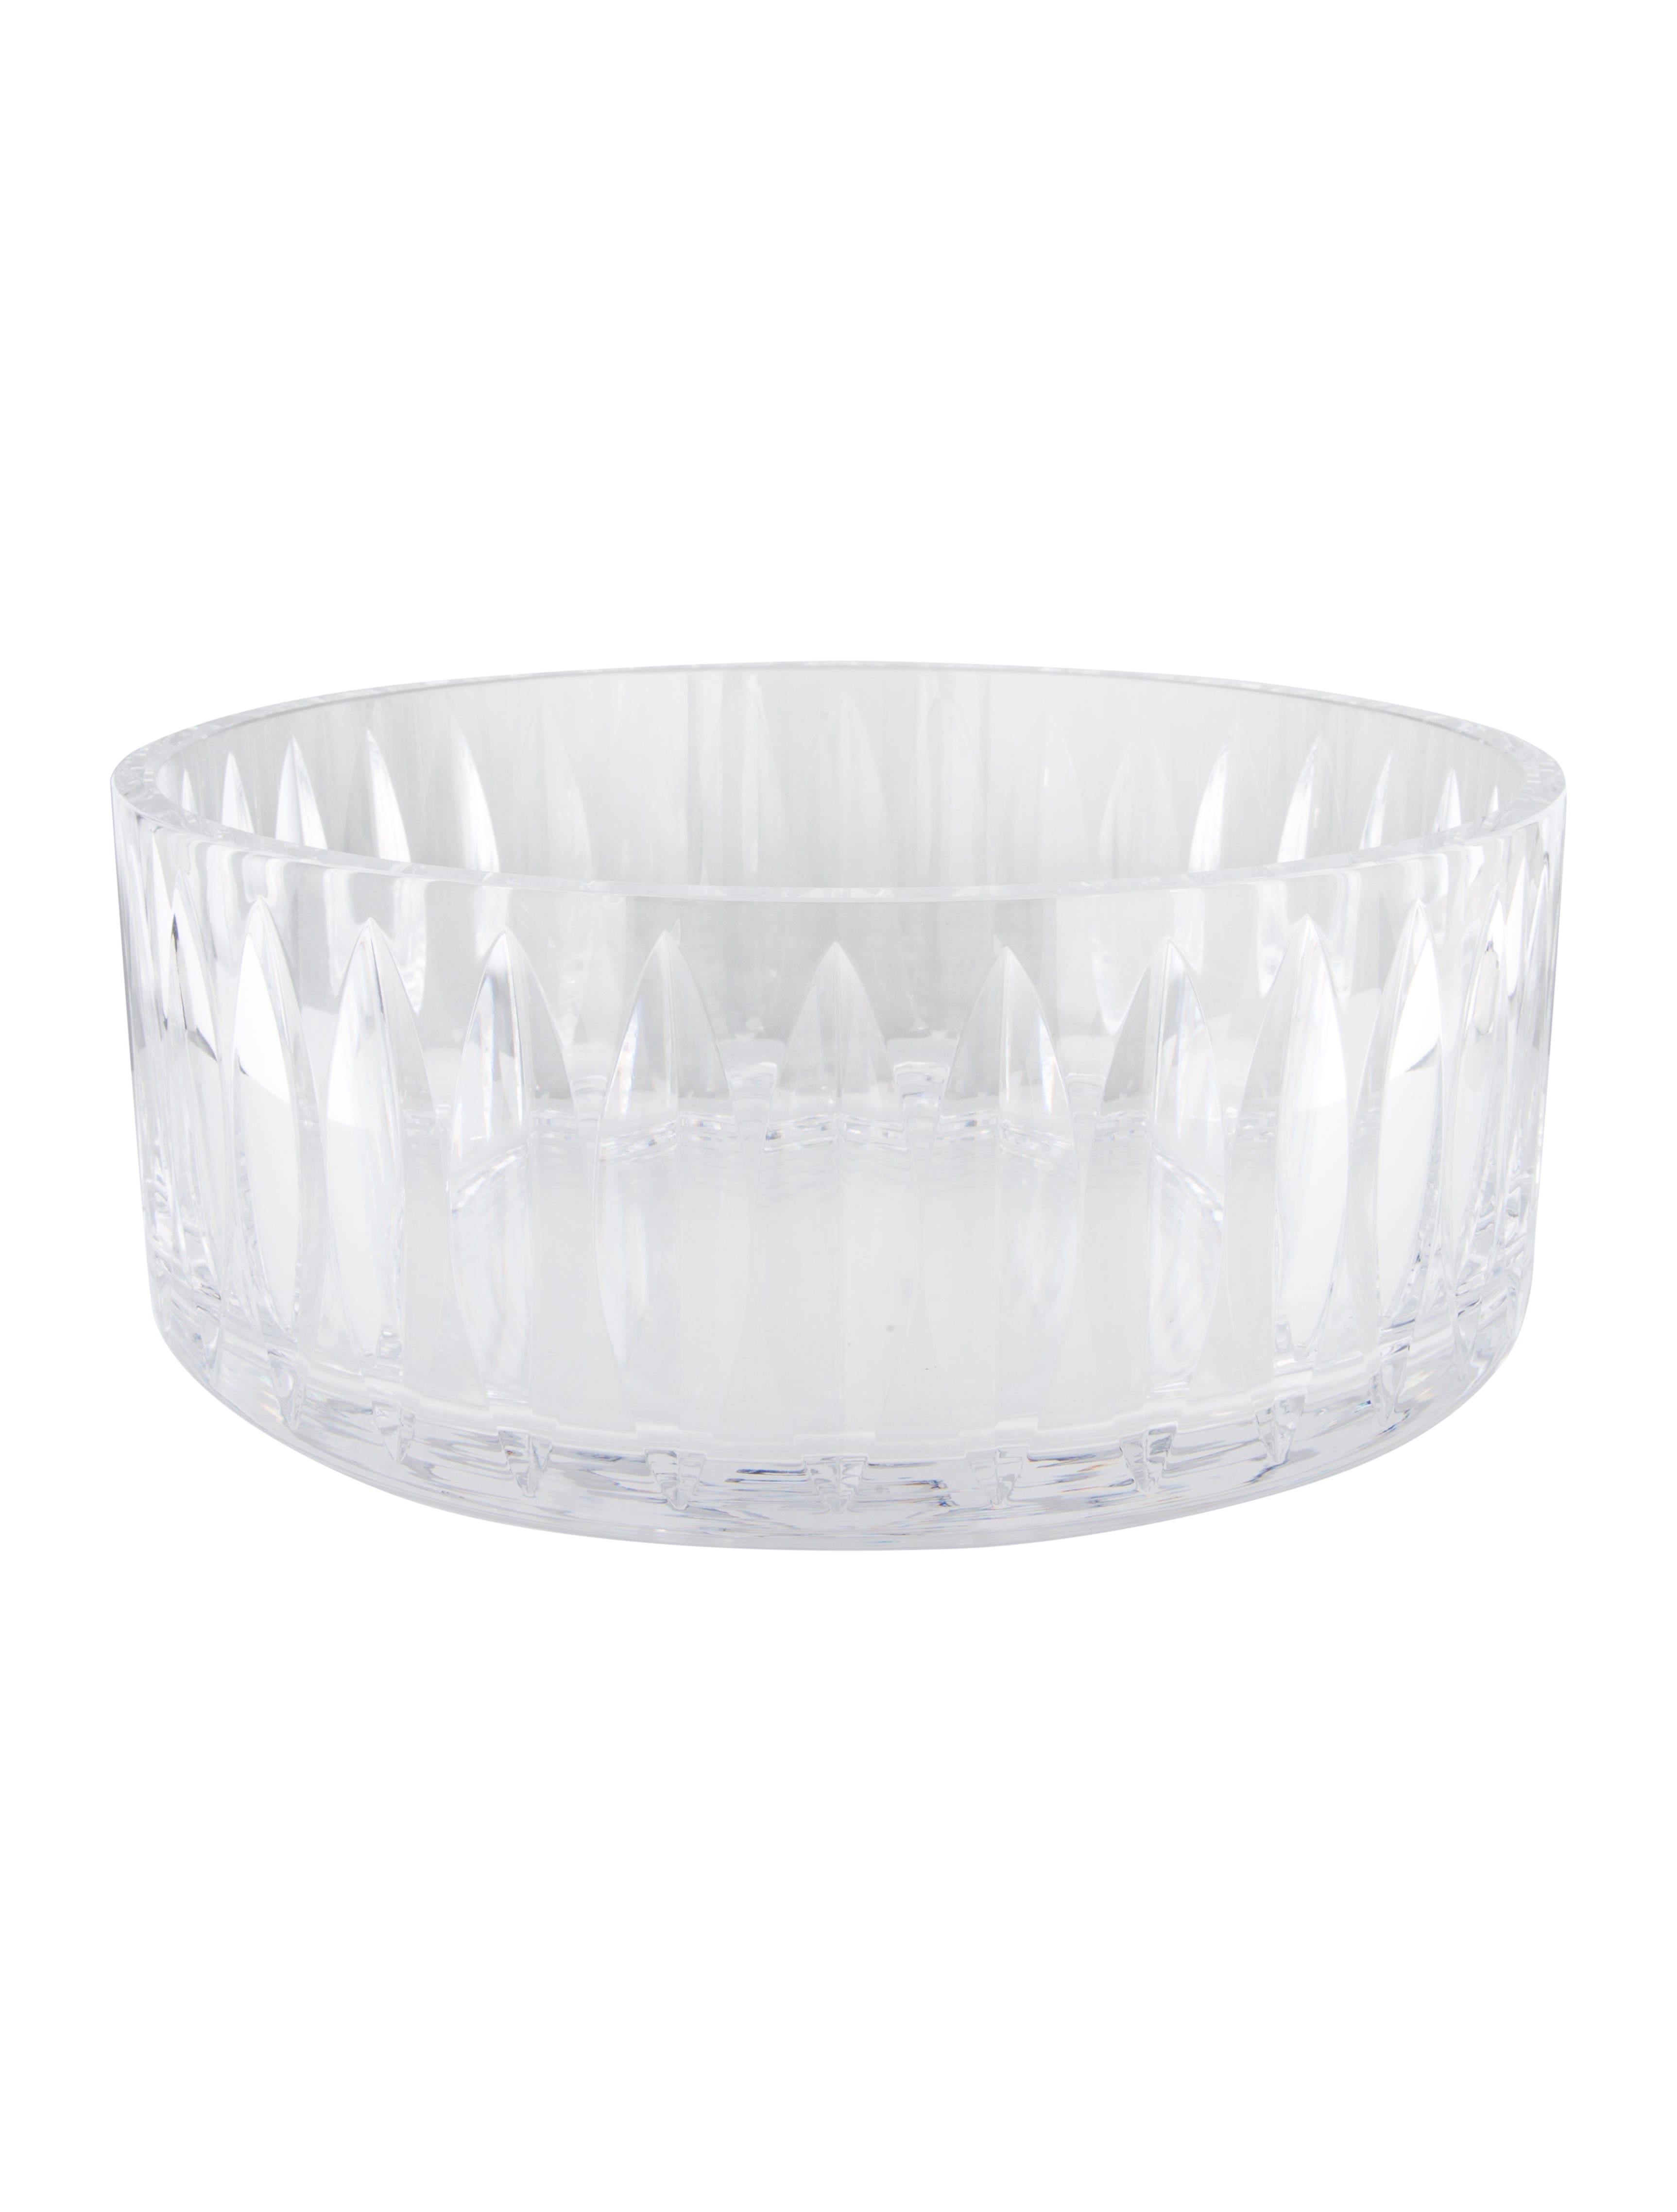 Orrefors crystal eye centerpiece bowl tabletop and kitchen worrf20171 the realreal - Kitchen table centerpiece bowls ...